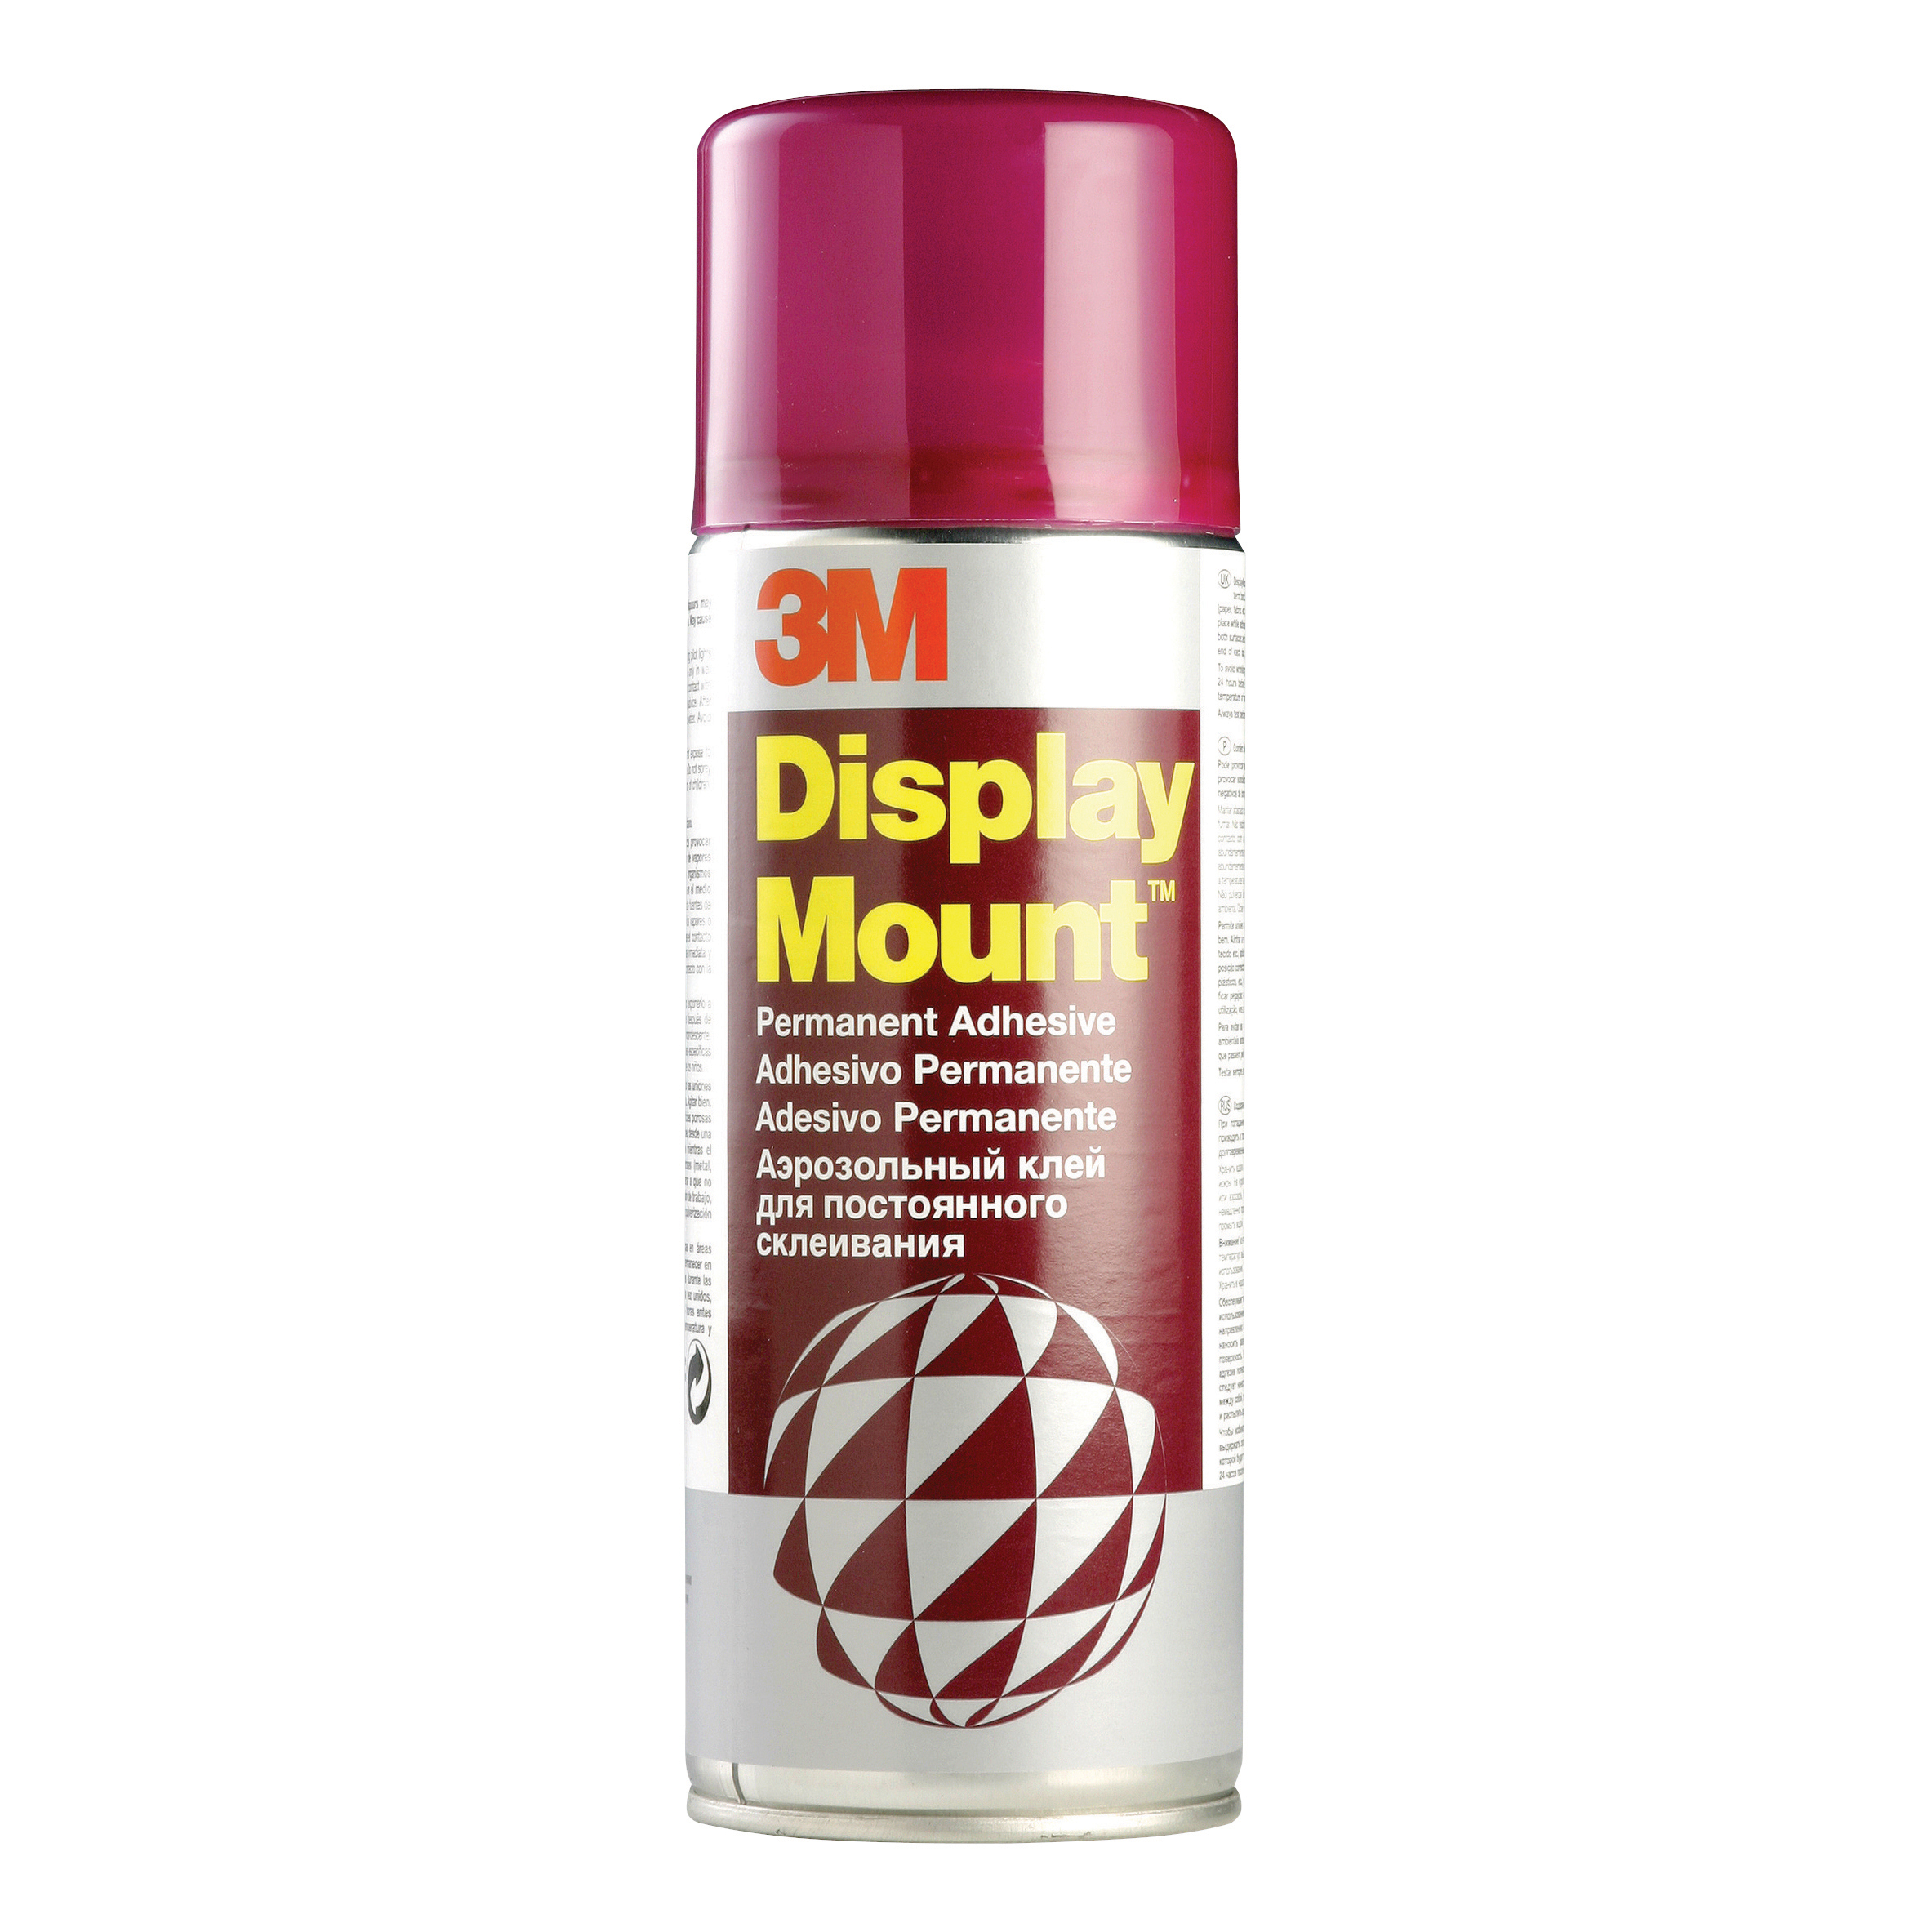 Spray Adhesive 3M DisplayMount Adhesive Spray Can Instant Hold CFC-Free 400ml Ref DMOUNT